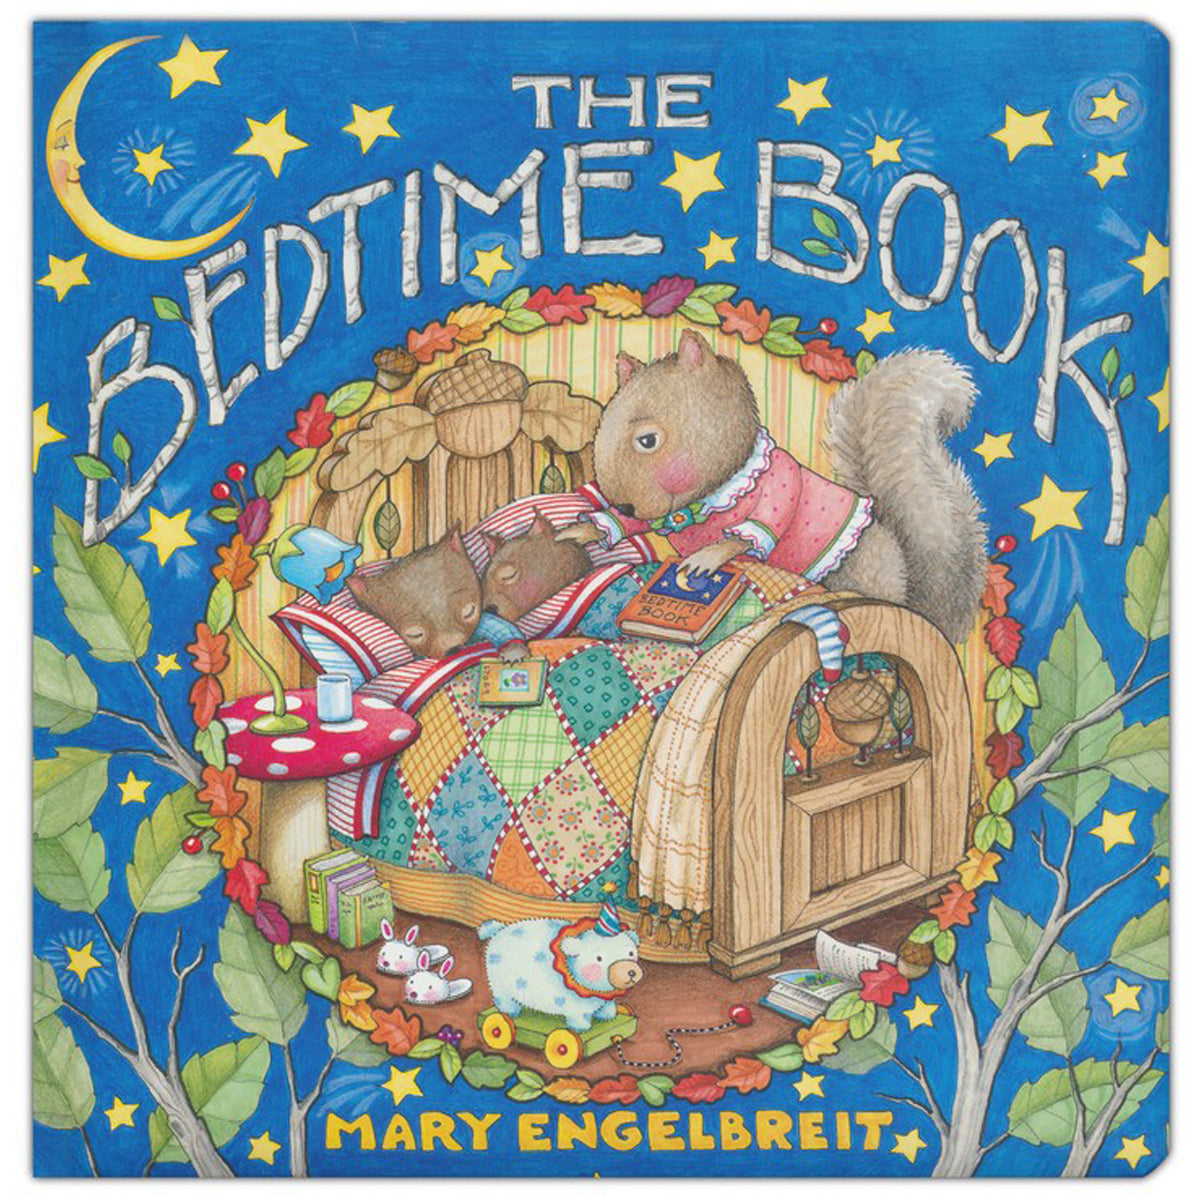 The Bedtime Book (Board Book)